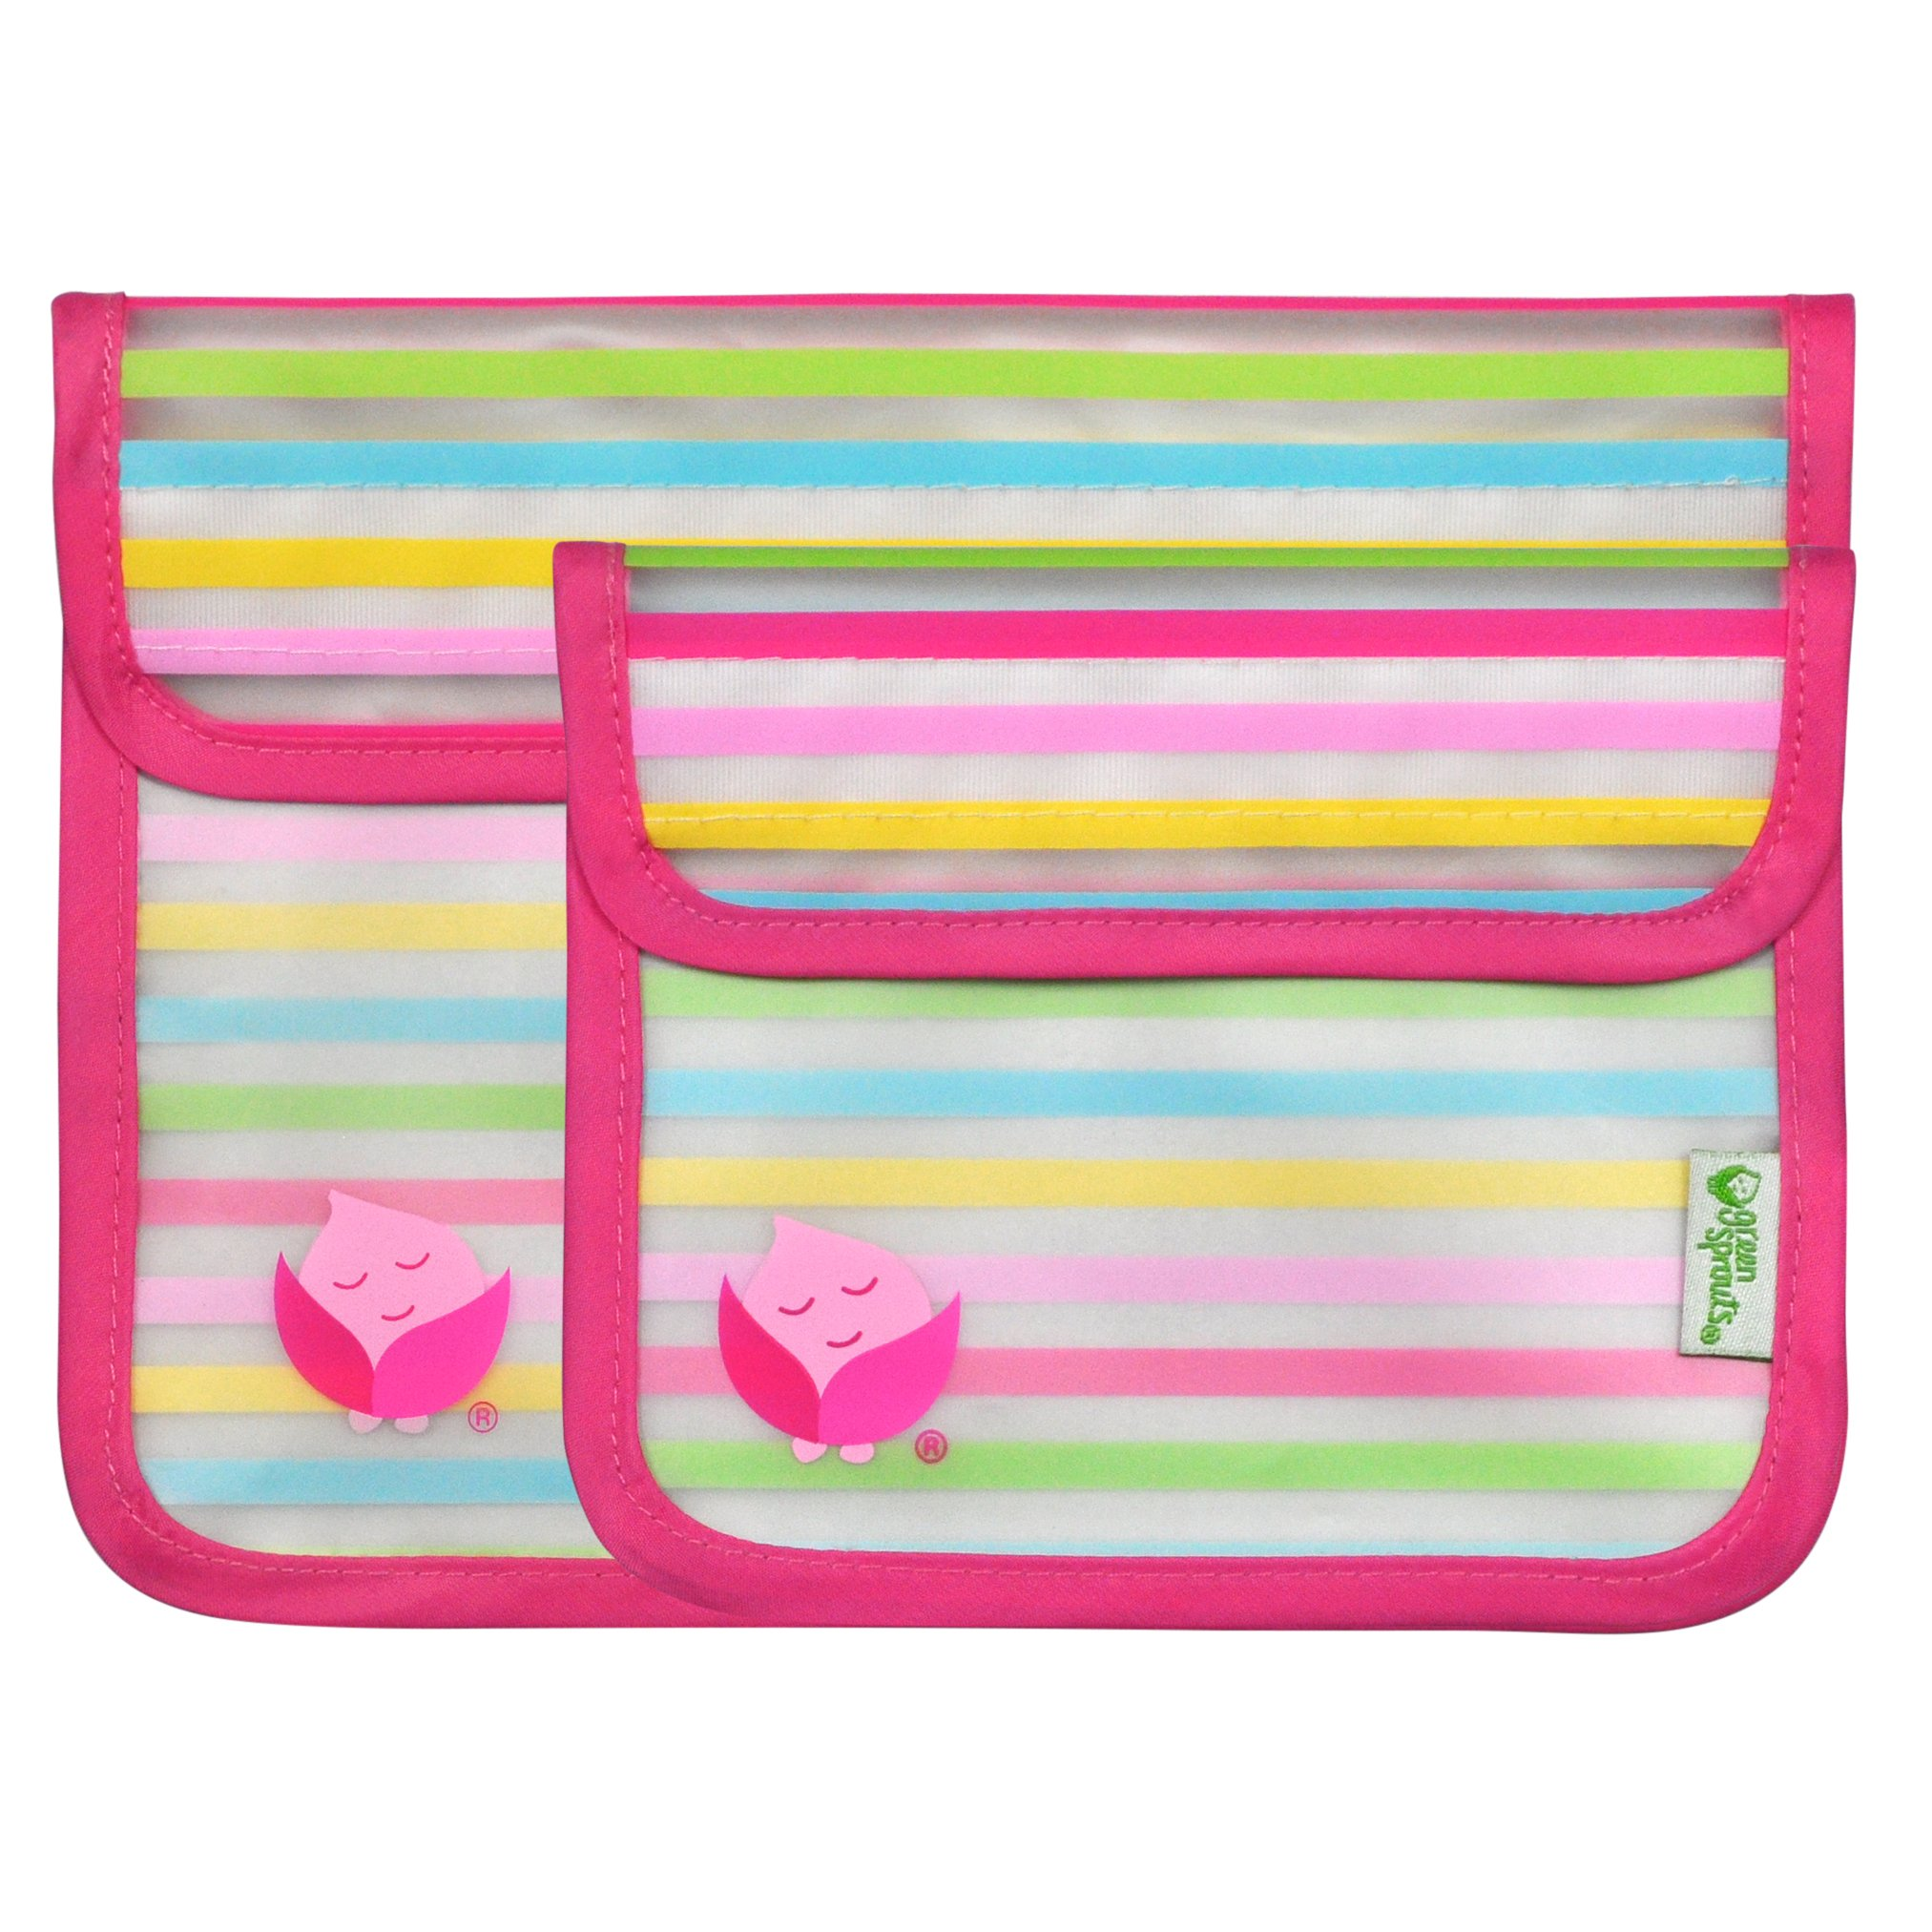 green sprouts 2 Piece Reusable Snack Bags, Pink